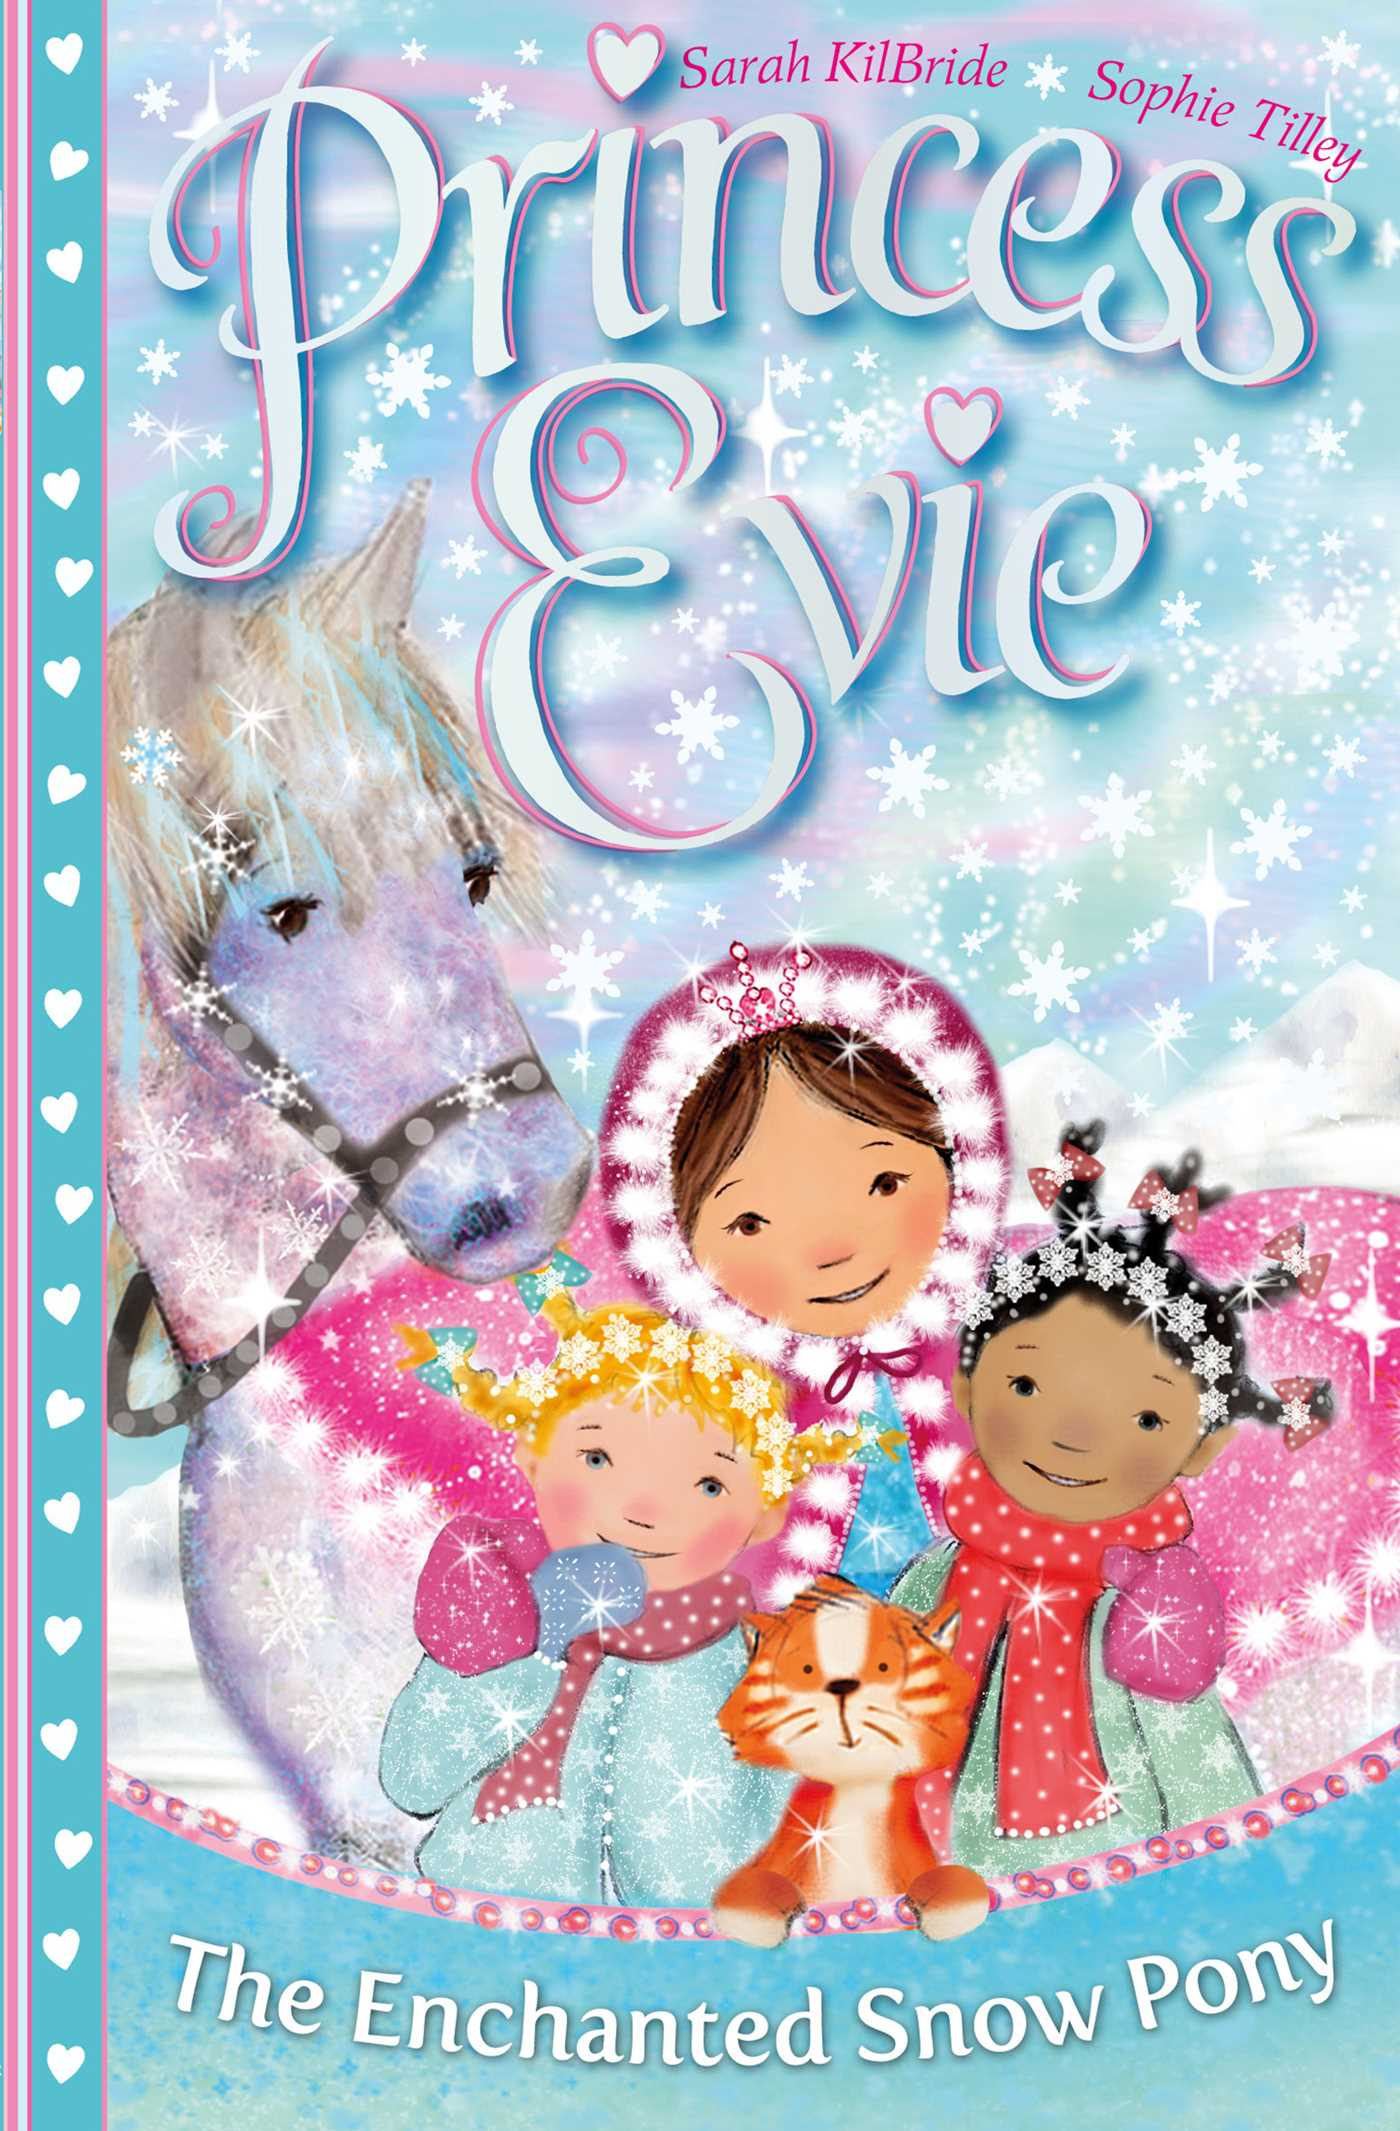 Princess evie the enchanted snow pony 9781471121821 hr